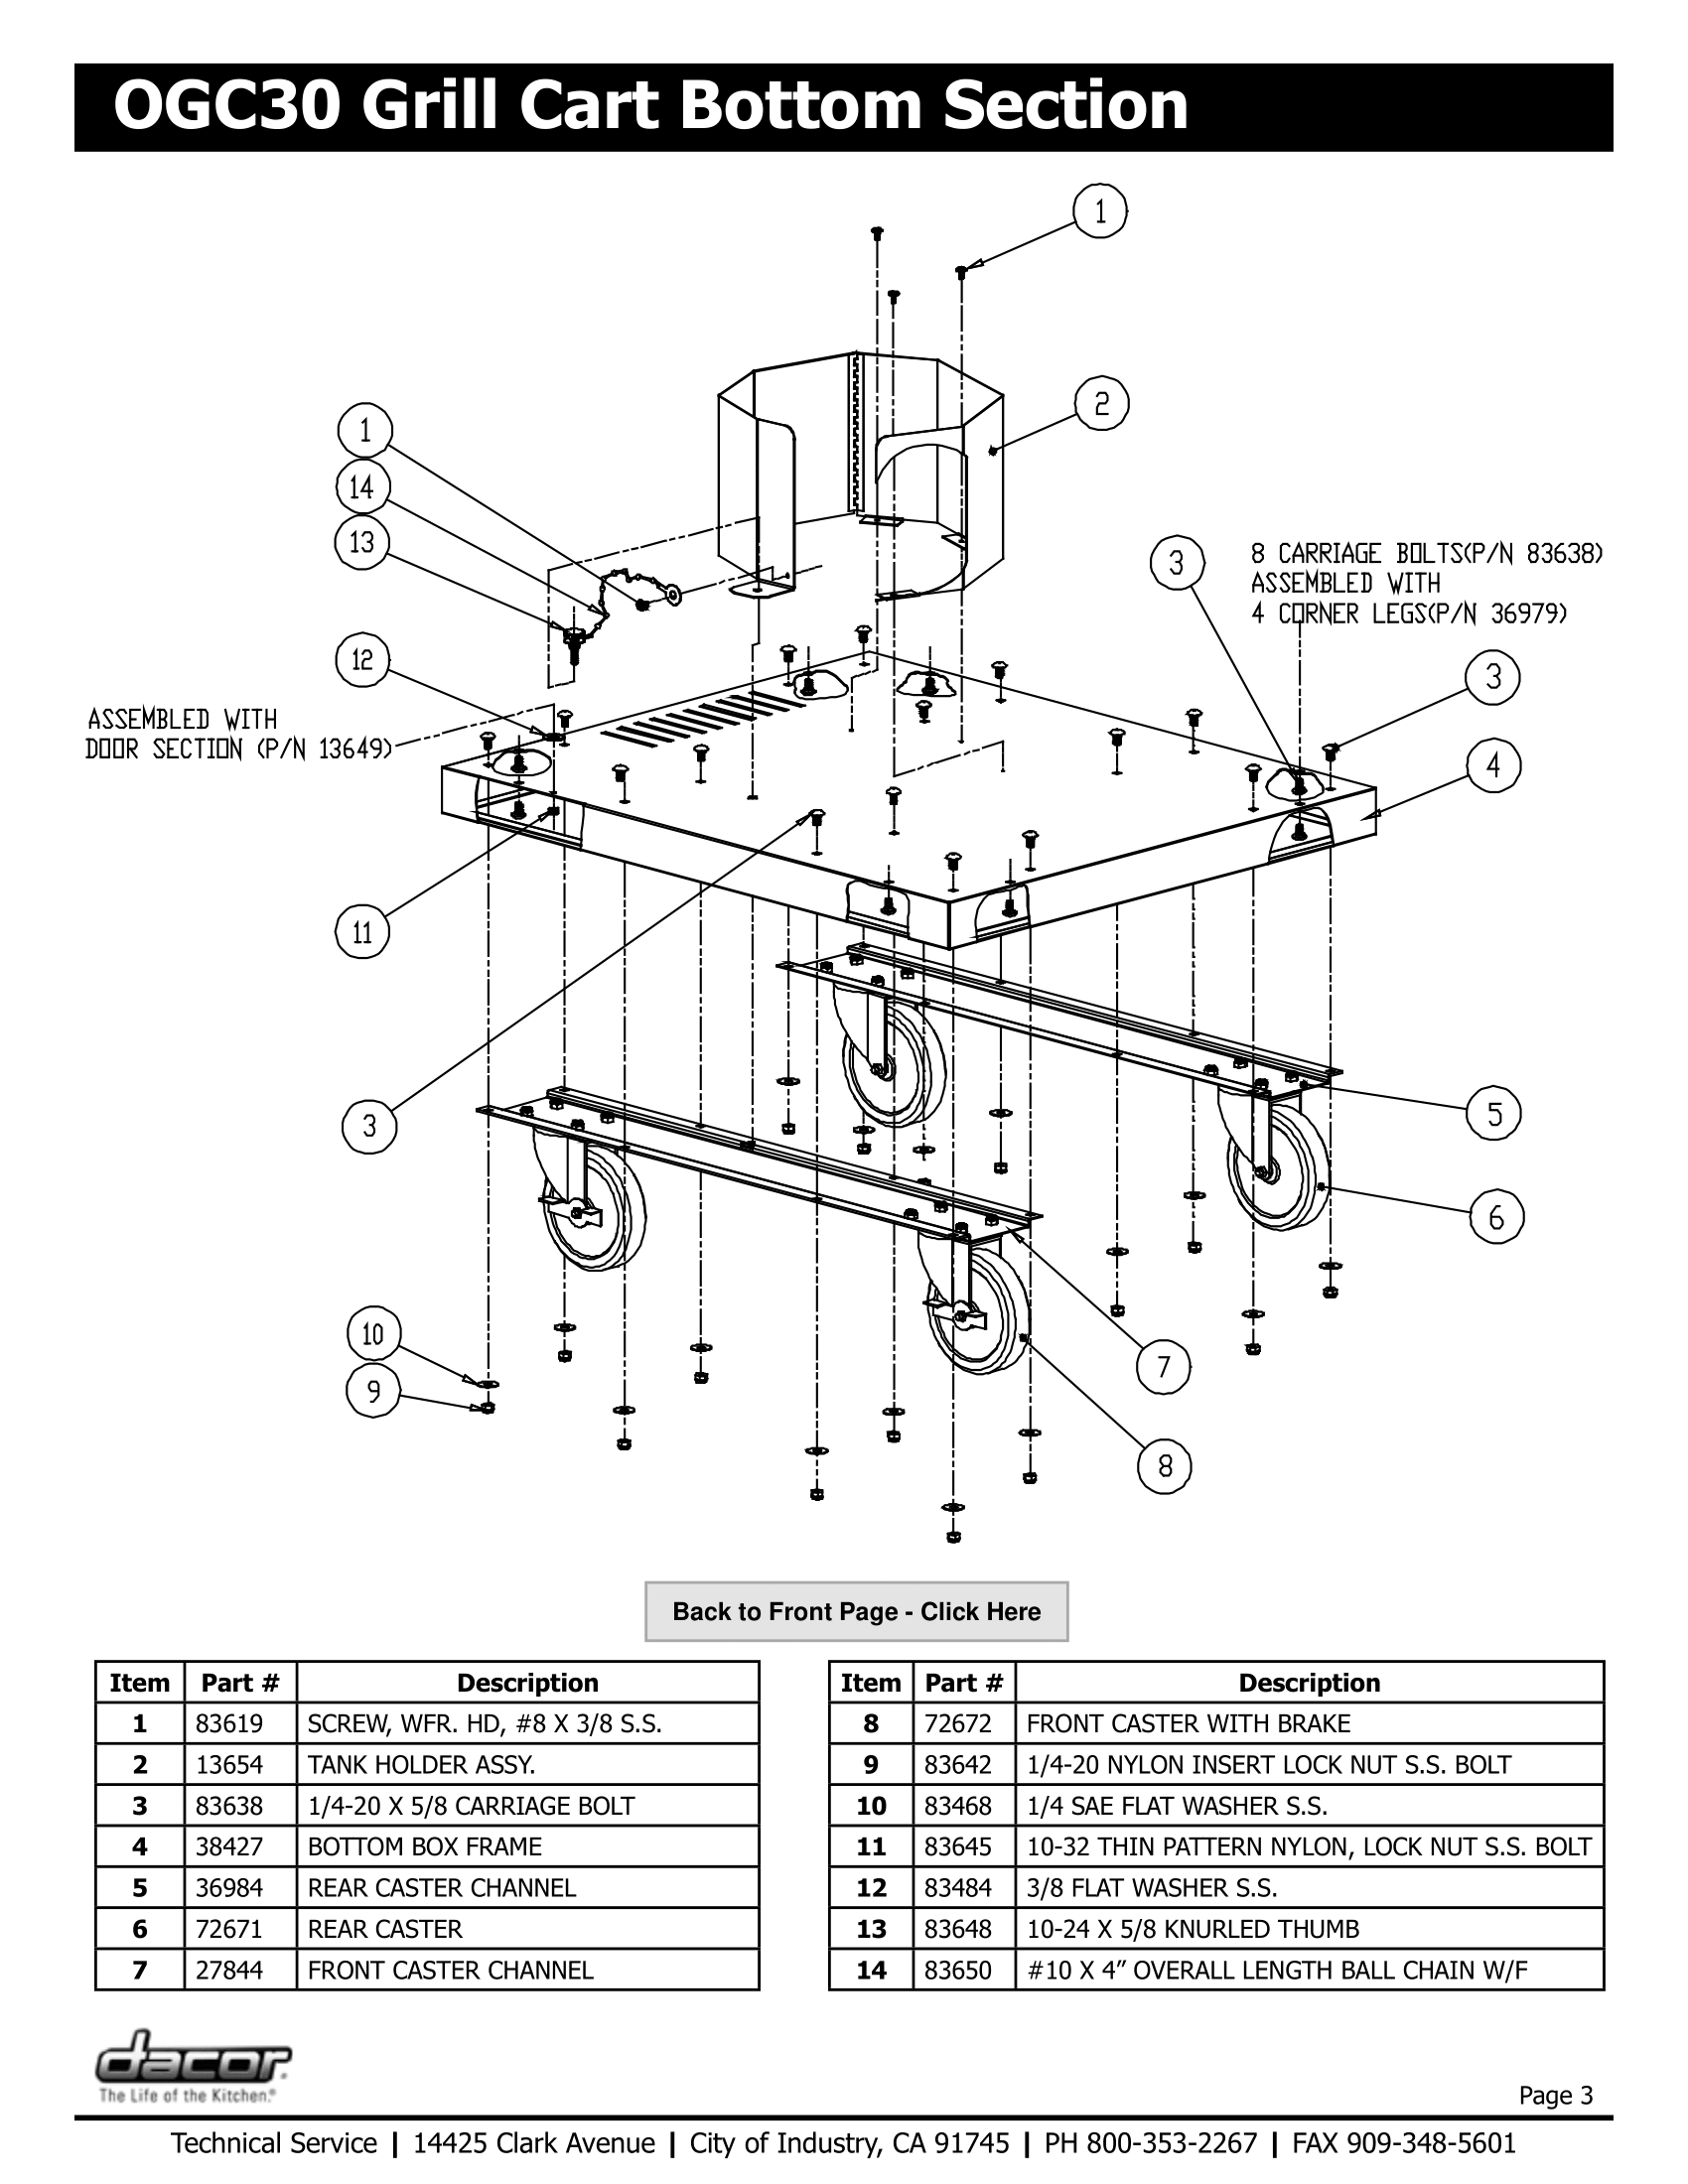 Dacor OGC30 Bottom Section Schematic